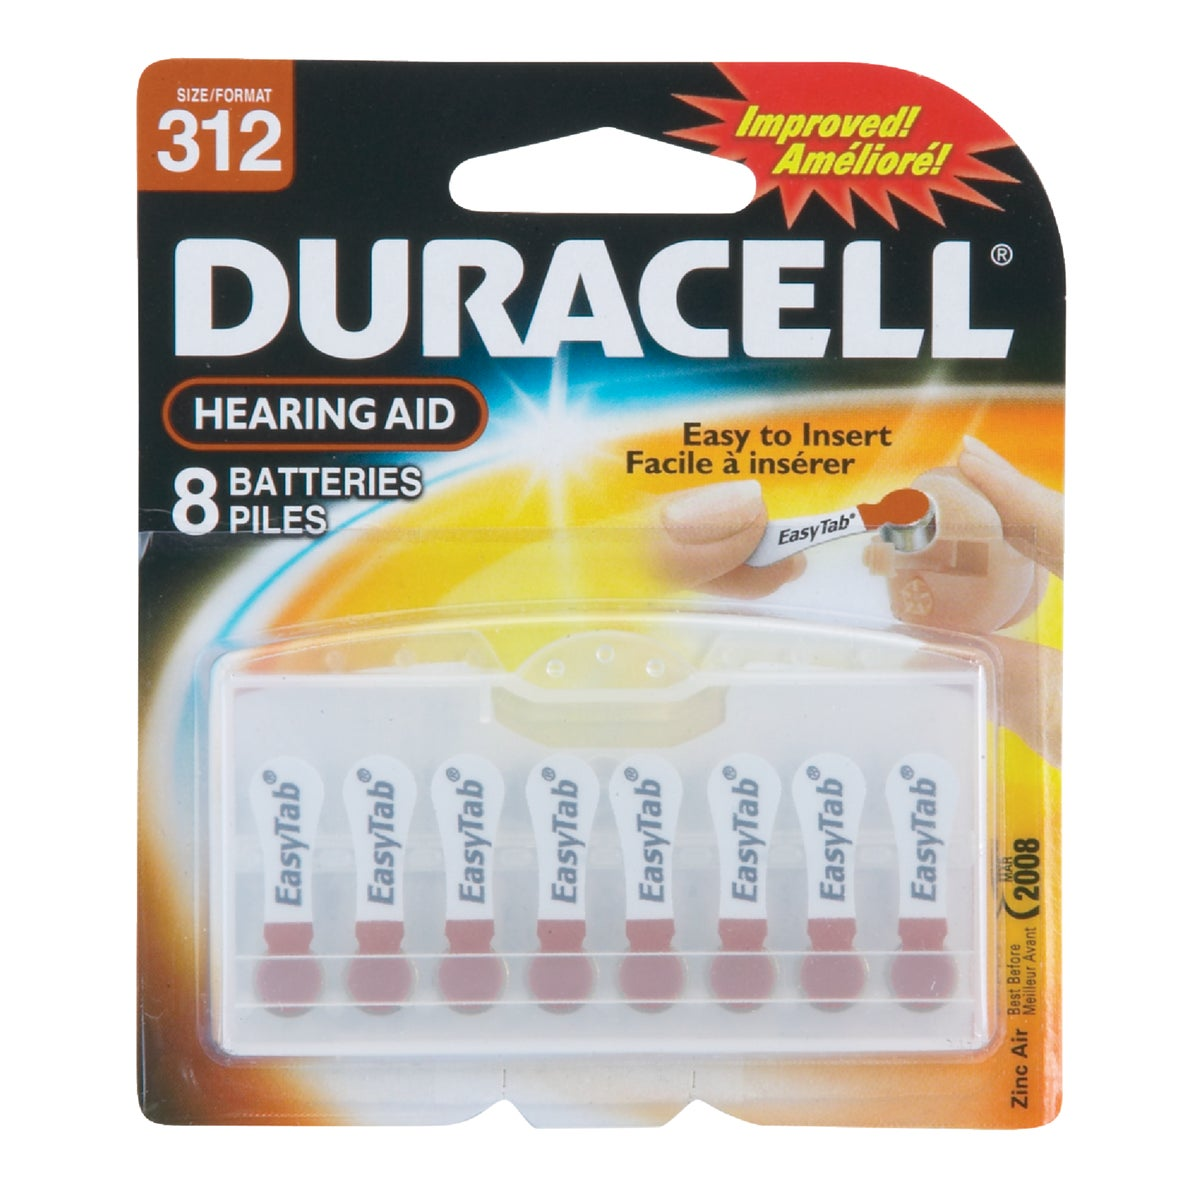 DA312 1.4V H AID BATTERY - 74387 by P & G  Duracell